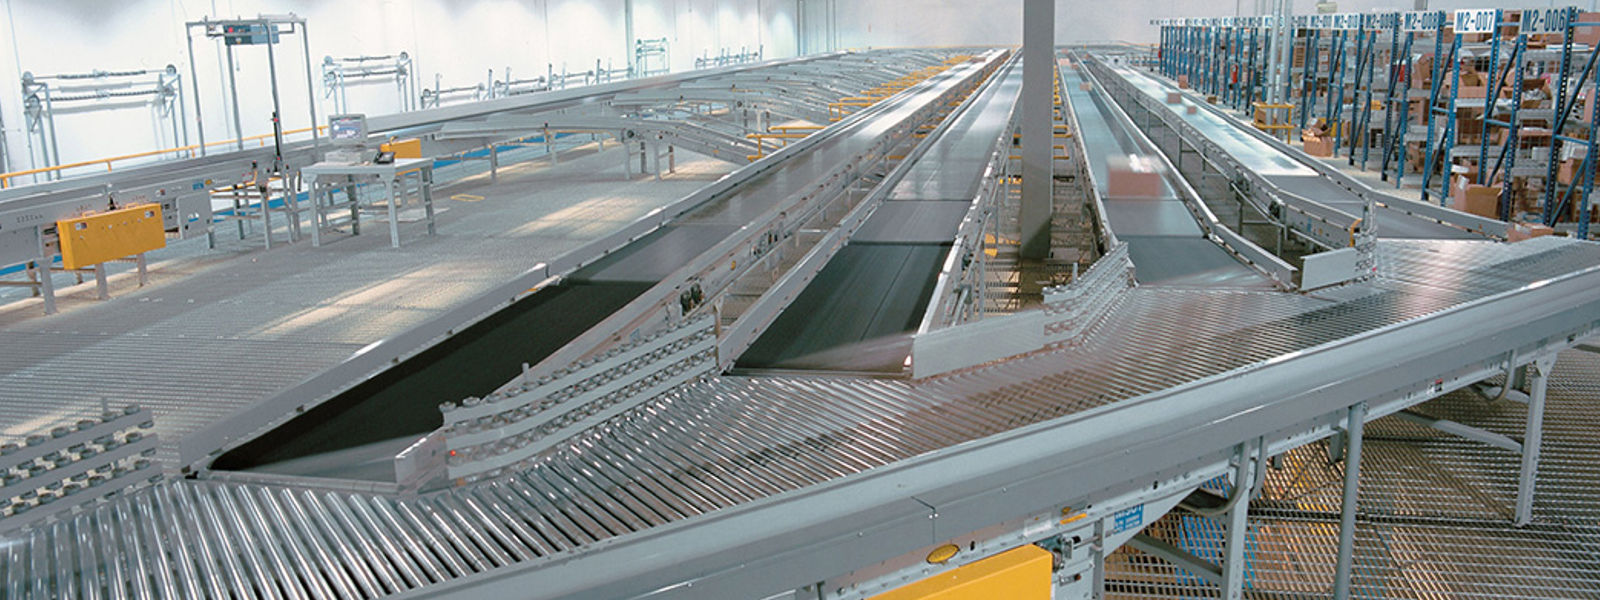 Hytrol Wearhouse Conveyors